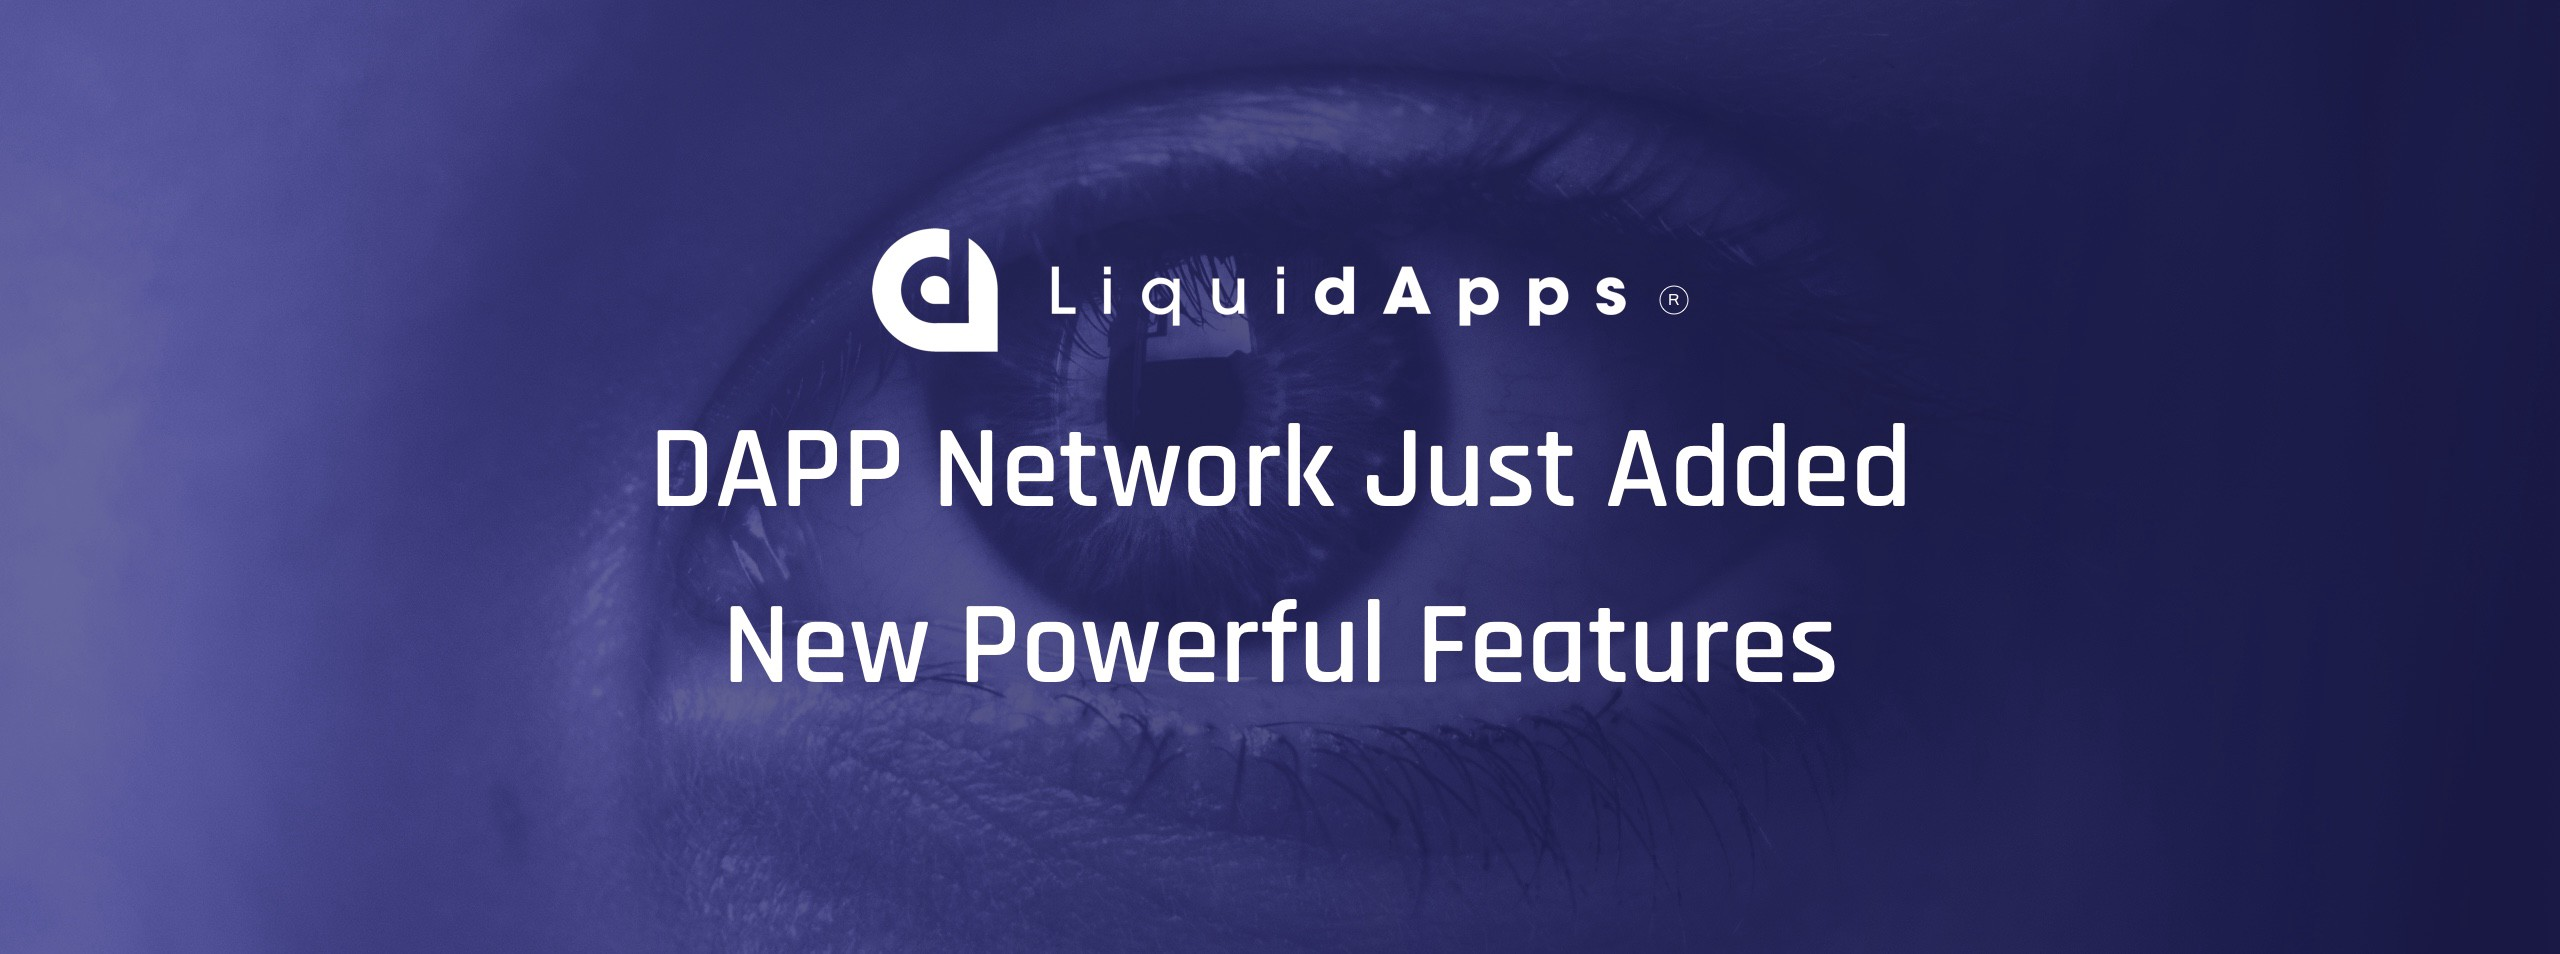 medium.com - LiquidApps - The DAPP Network Just Added Powerful New Features for EOS dApps